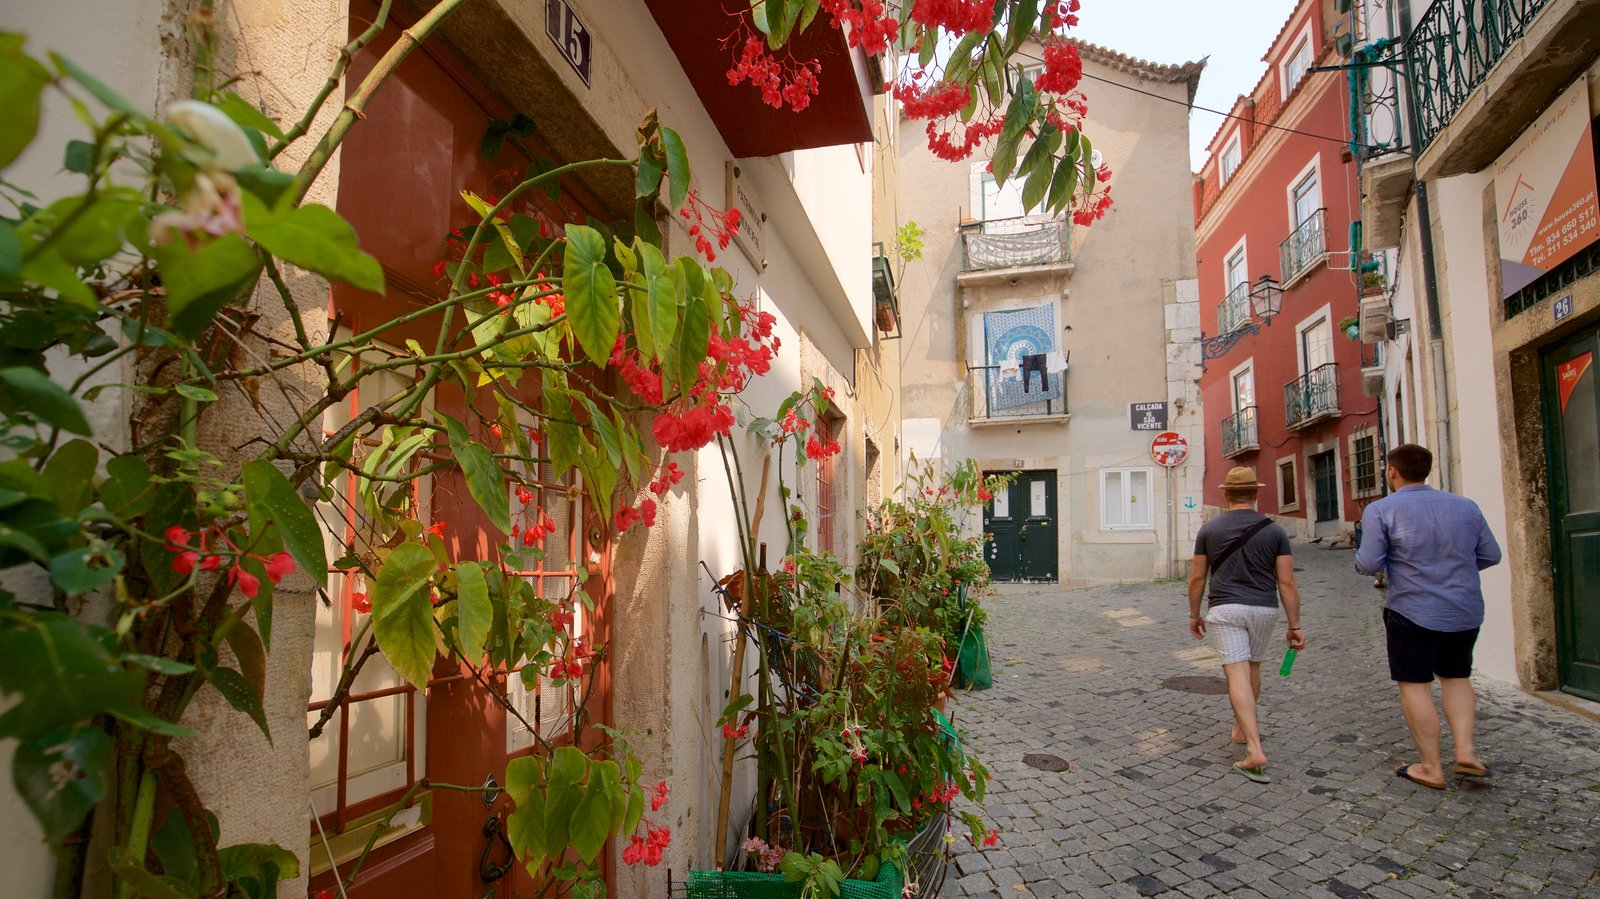 Alfama showing street scenes and flowers as well as a couple